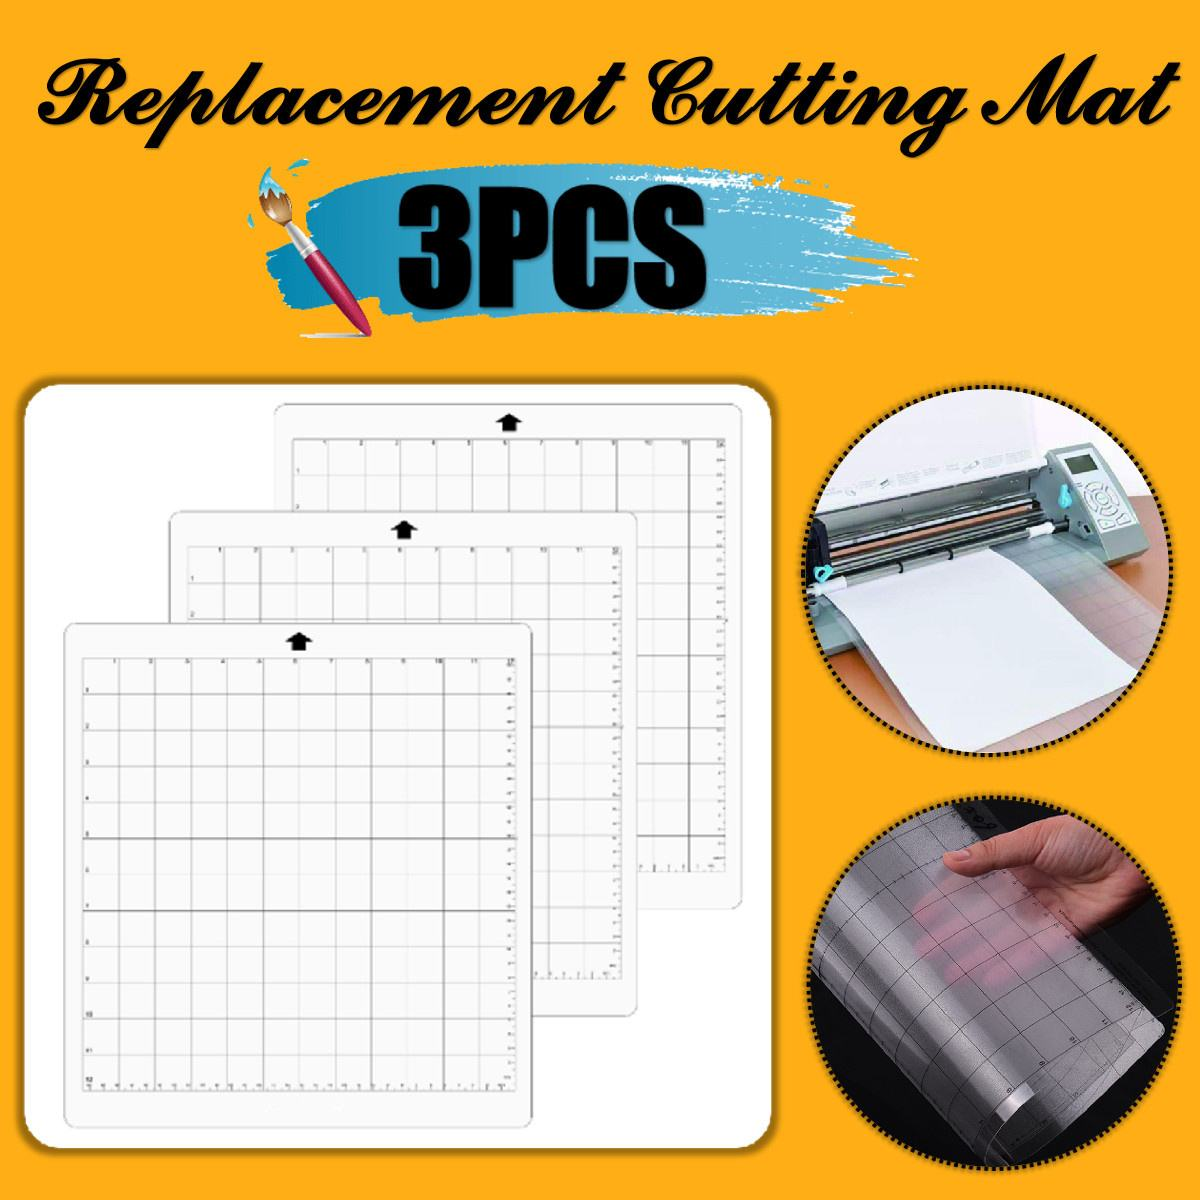 6PCS Replacement Cutting Mat Transparent Adhesive Mat Pad With Measuring Grid 12 By 12-Inch For Silhouette Cameo Plotter Machine